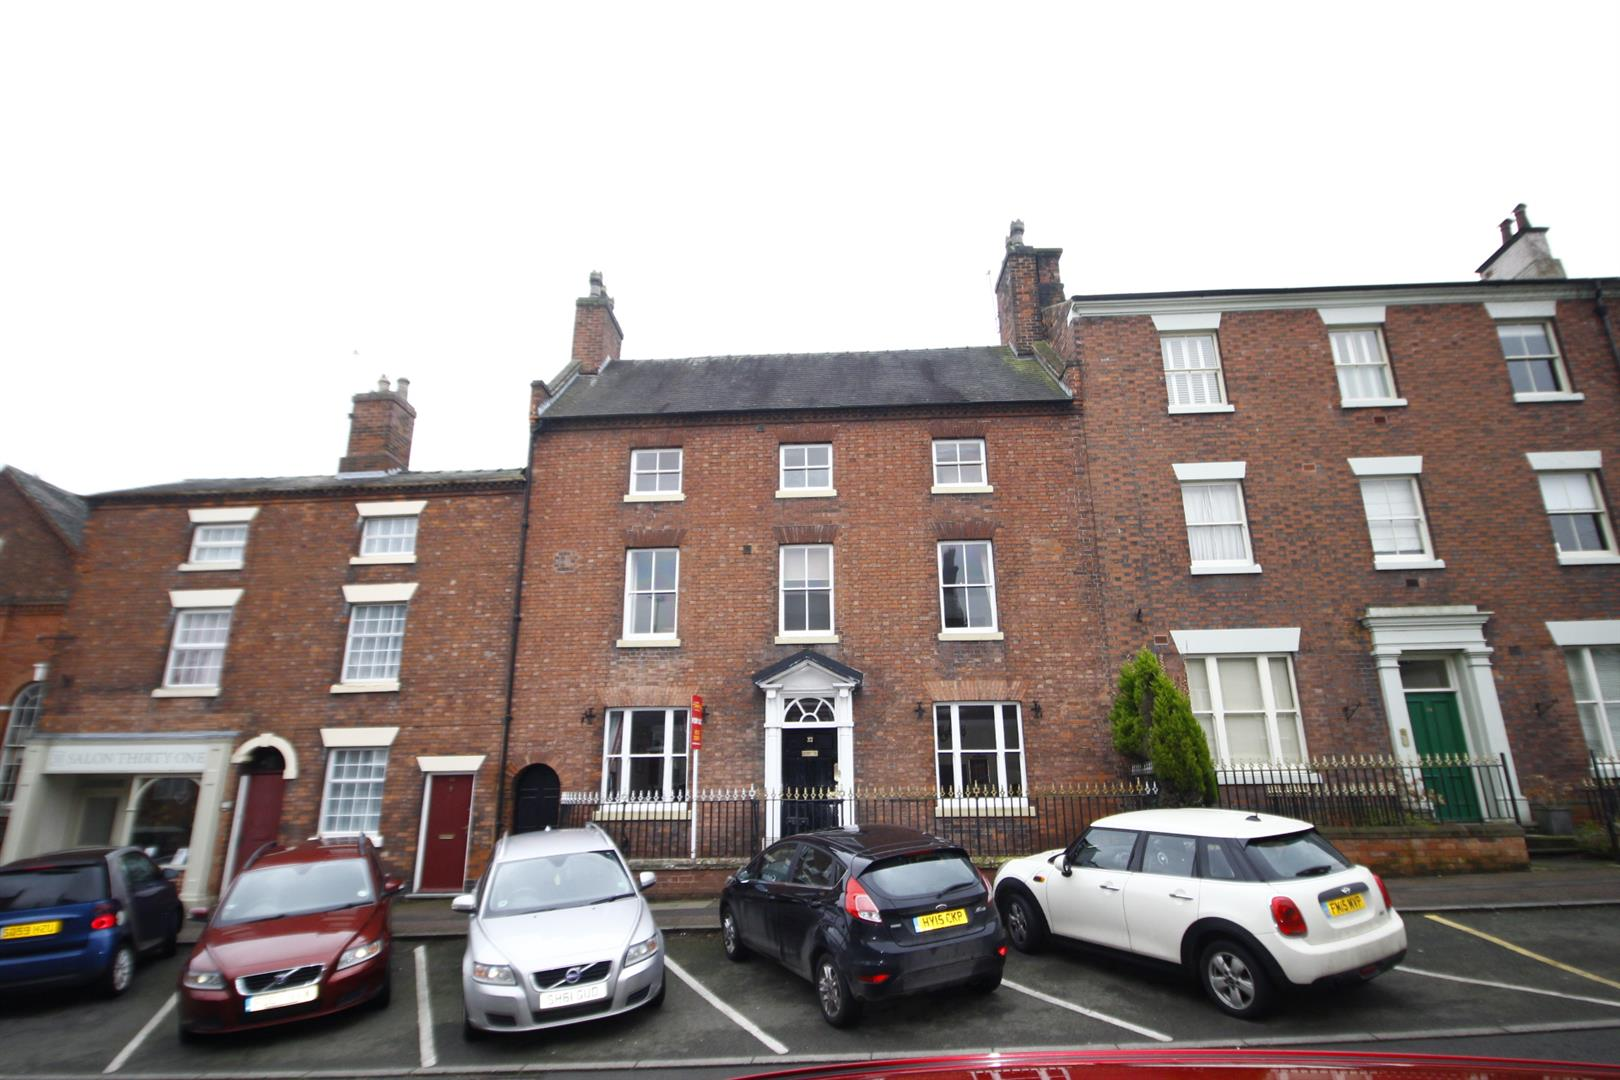 5 Bedrooms Terraced House for sale in High Street, Tutbury, Burton-On-Trent